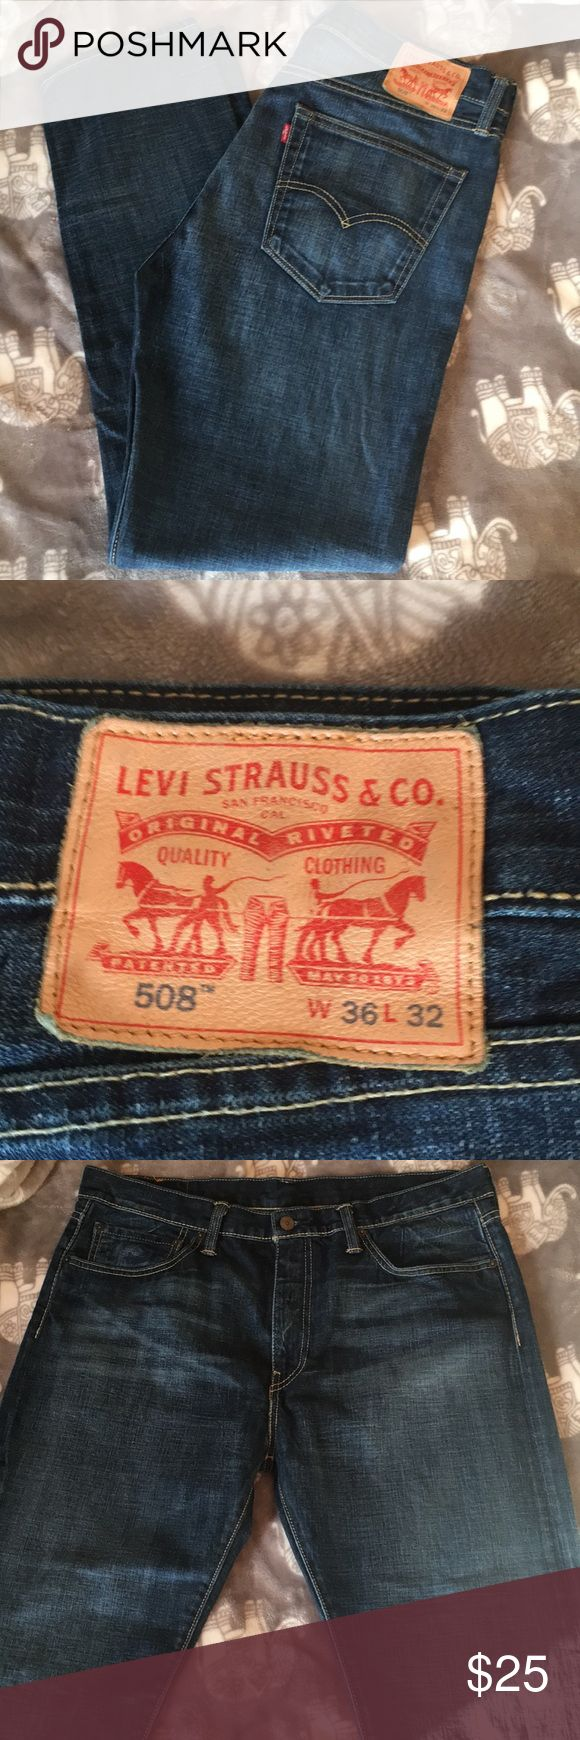 Levi jeans Good used condition Levi's 508 W36 L 32. Worm only a handful of times. Levi's Jeans Slim Straight